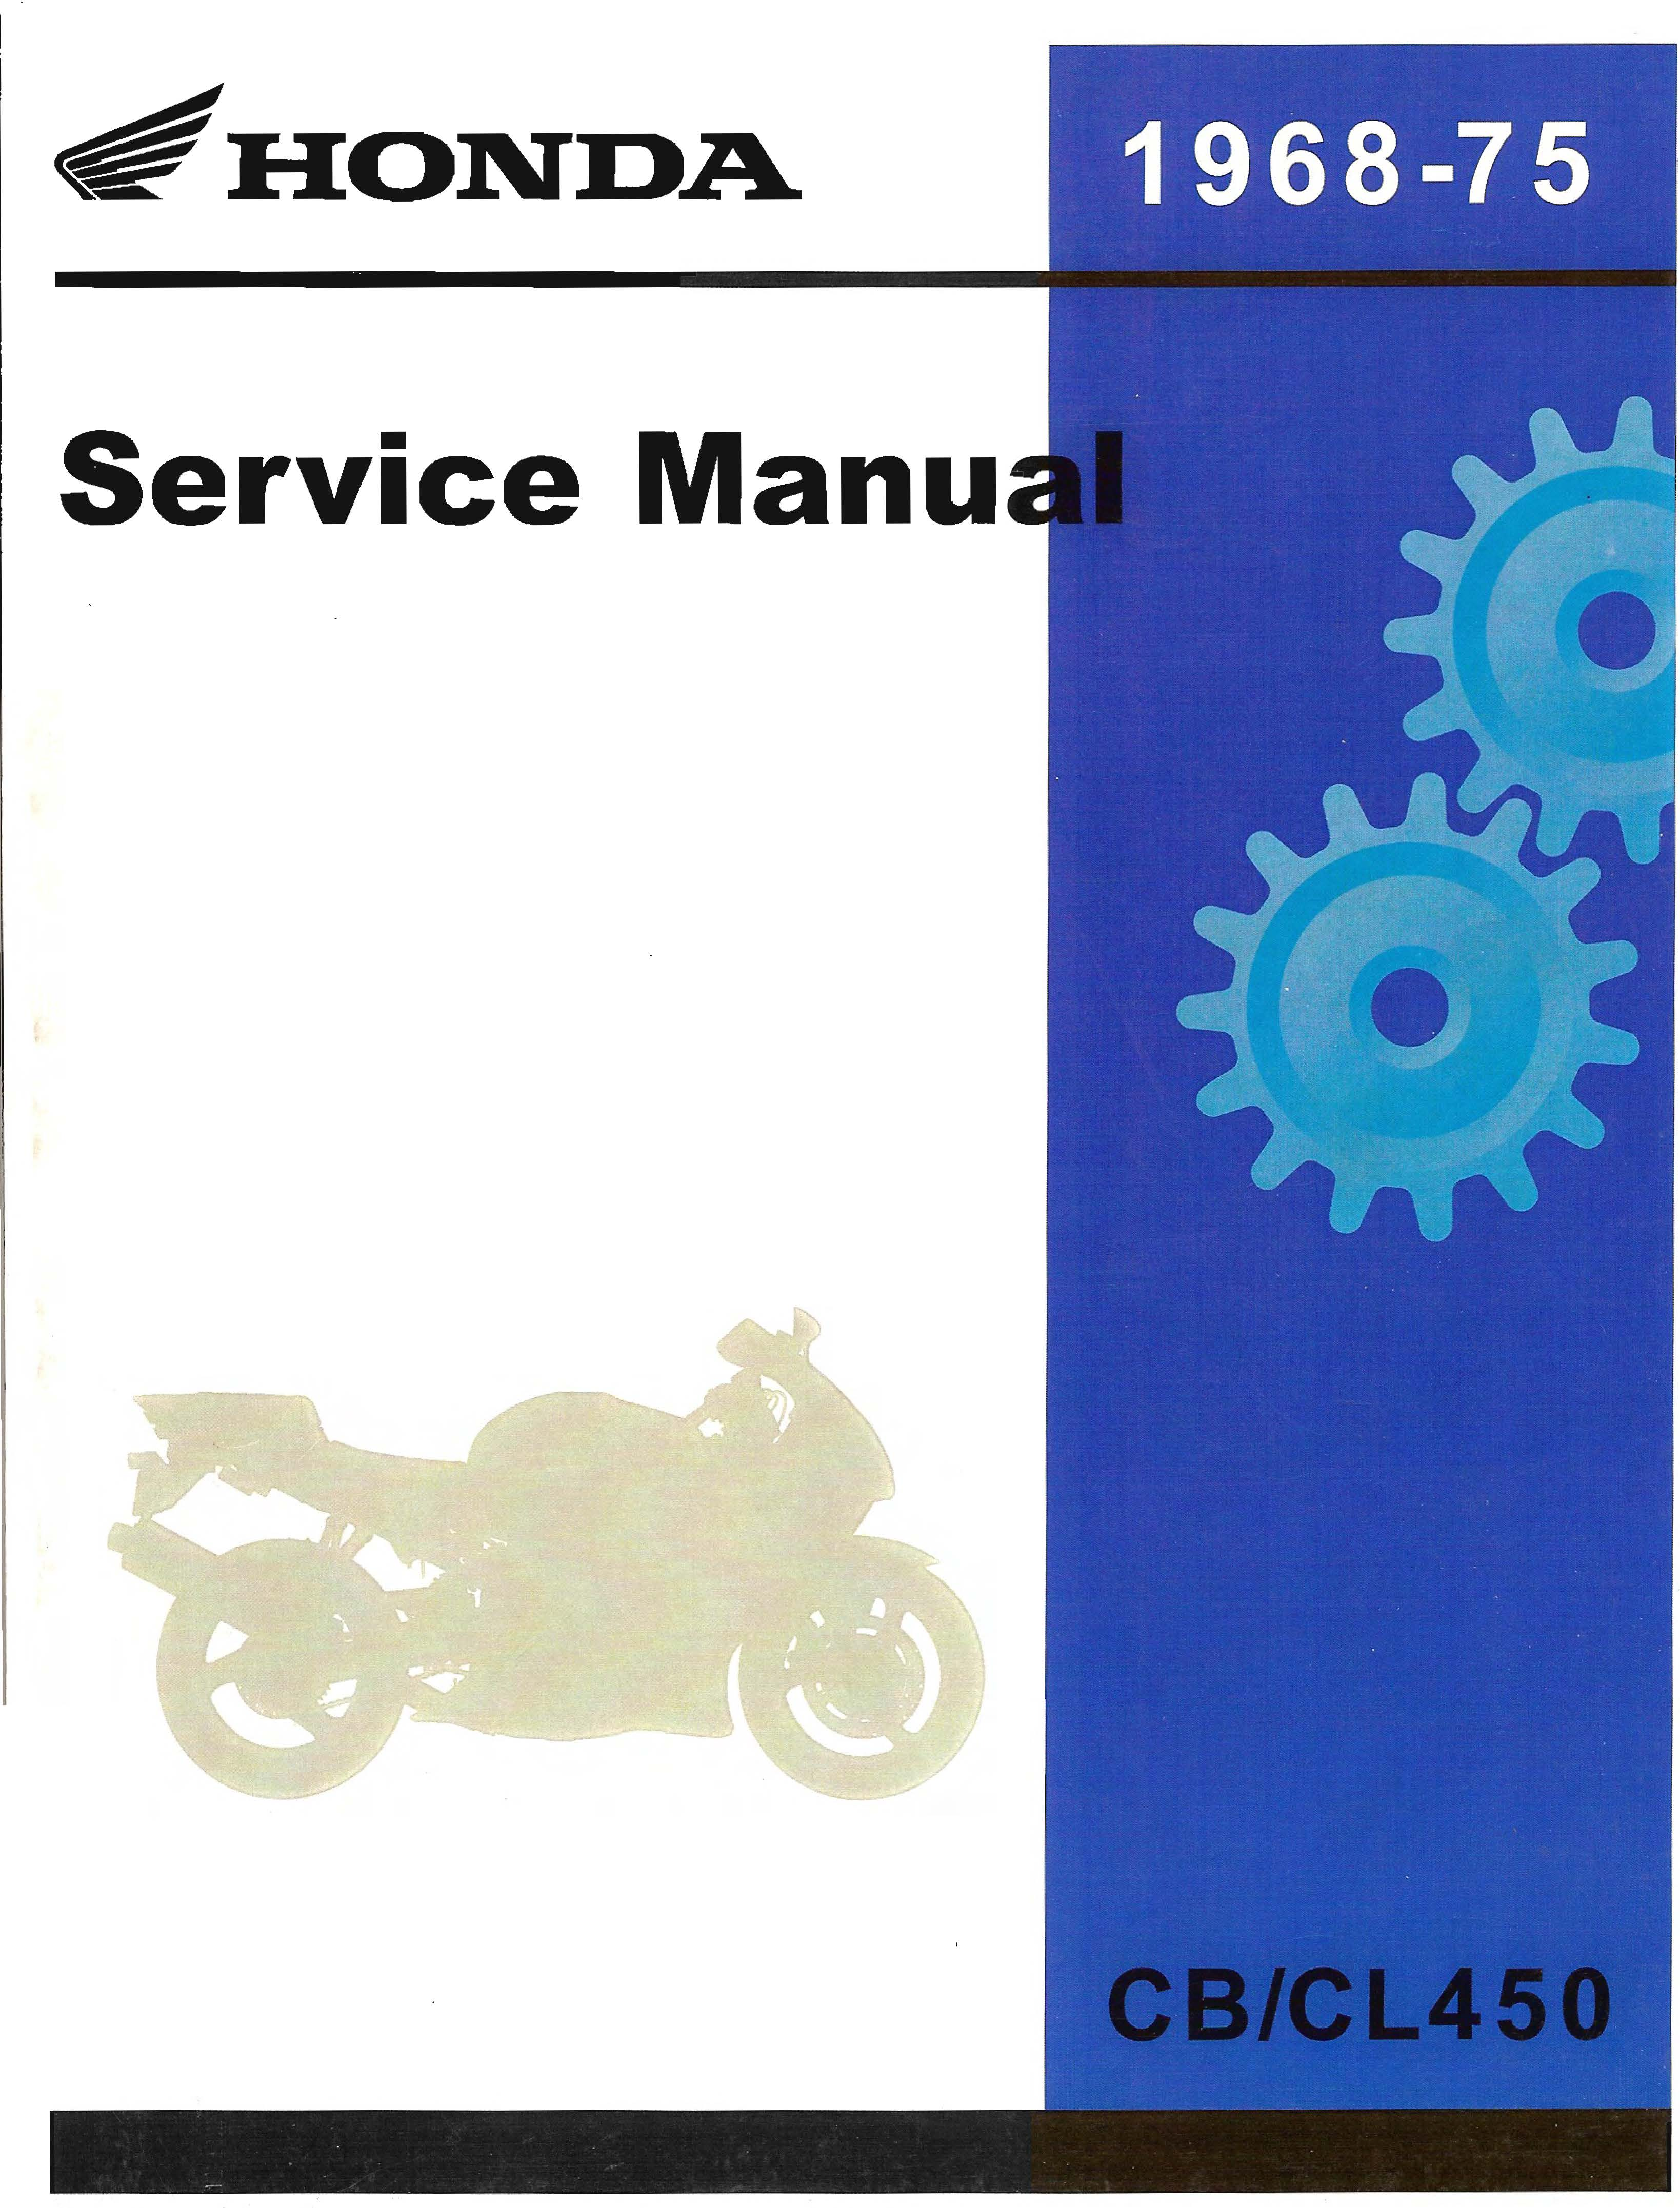 Workshop manual for Honda CL450 (1968-1975)